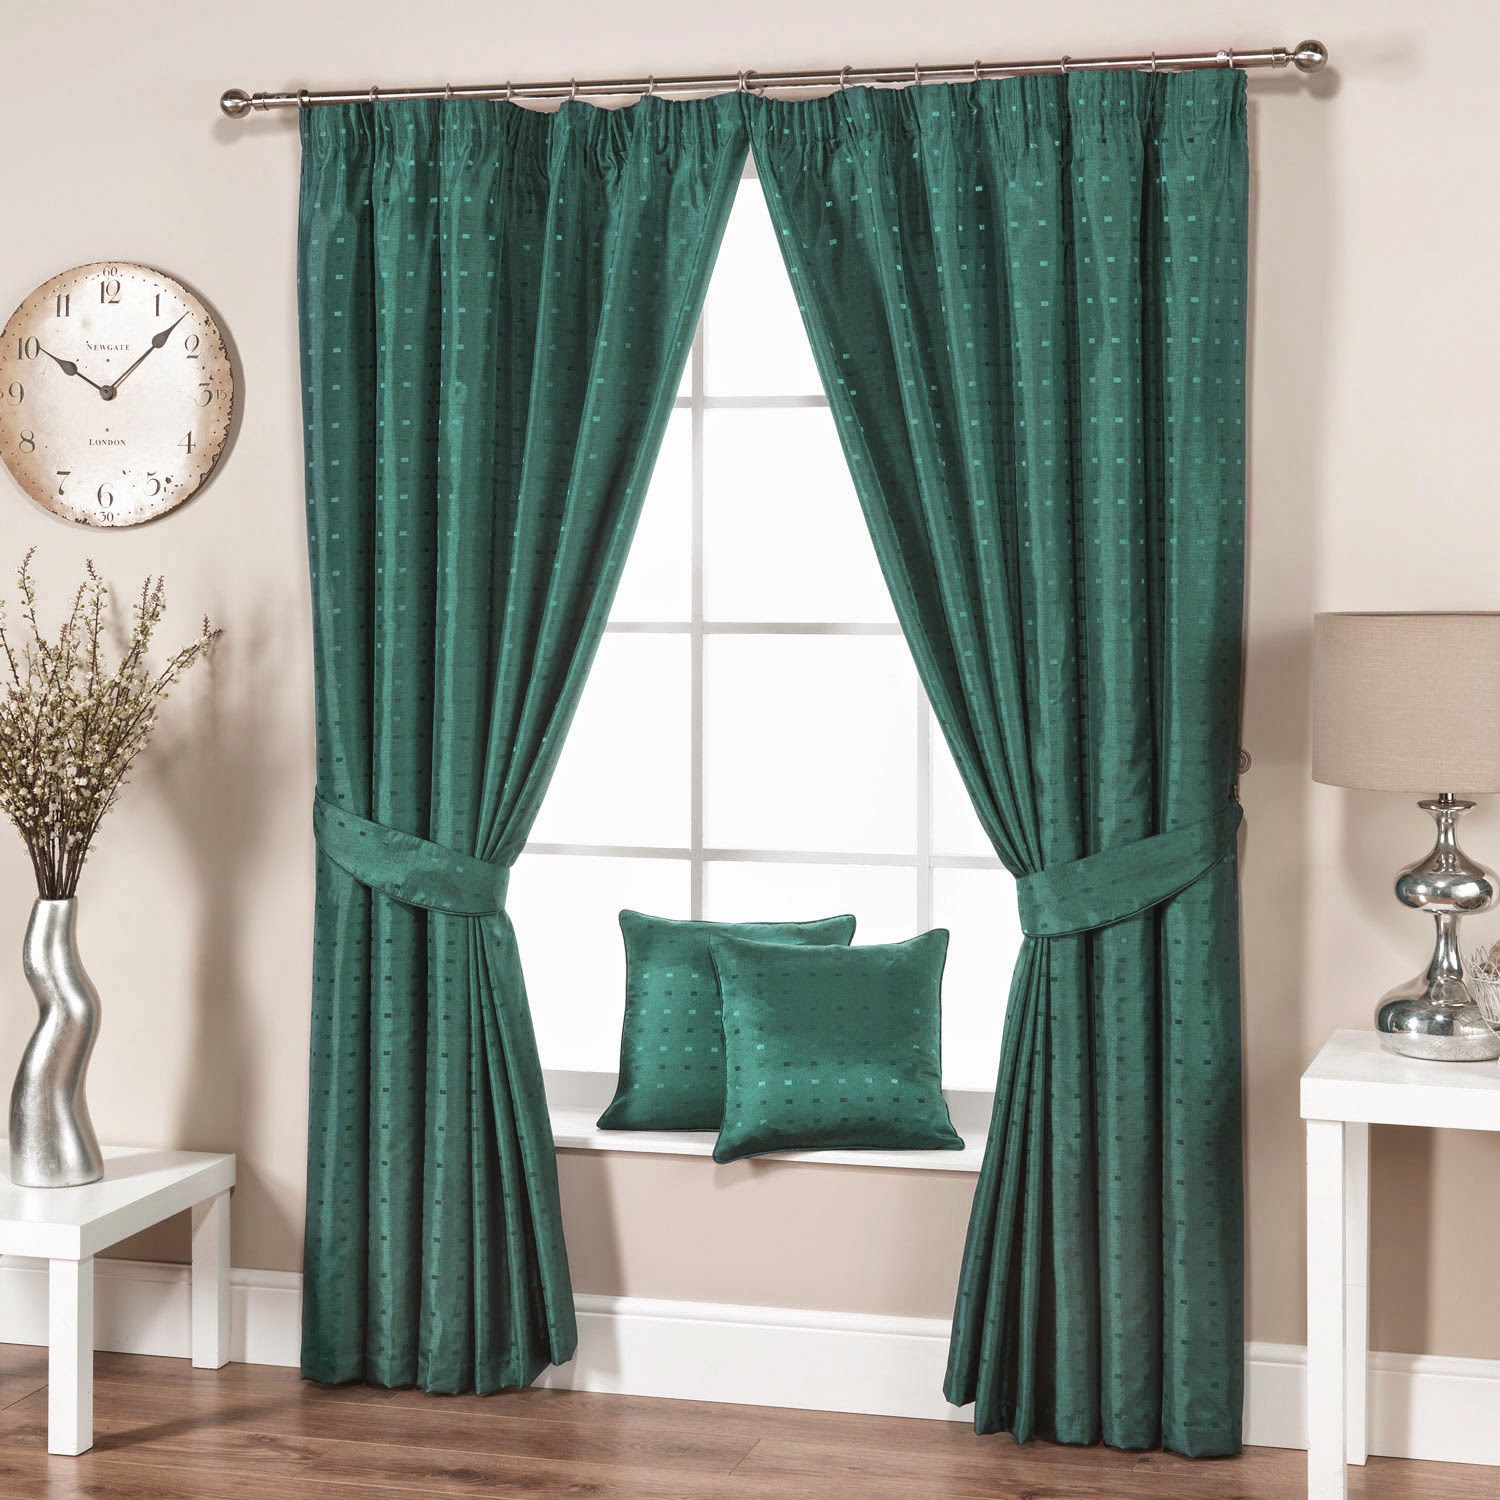 Curtains Ideas best light blocking curtains : living room curtains in white interior green living room curtains ...